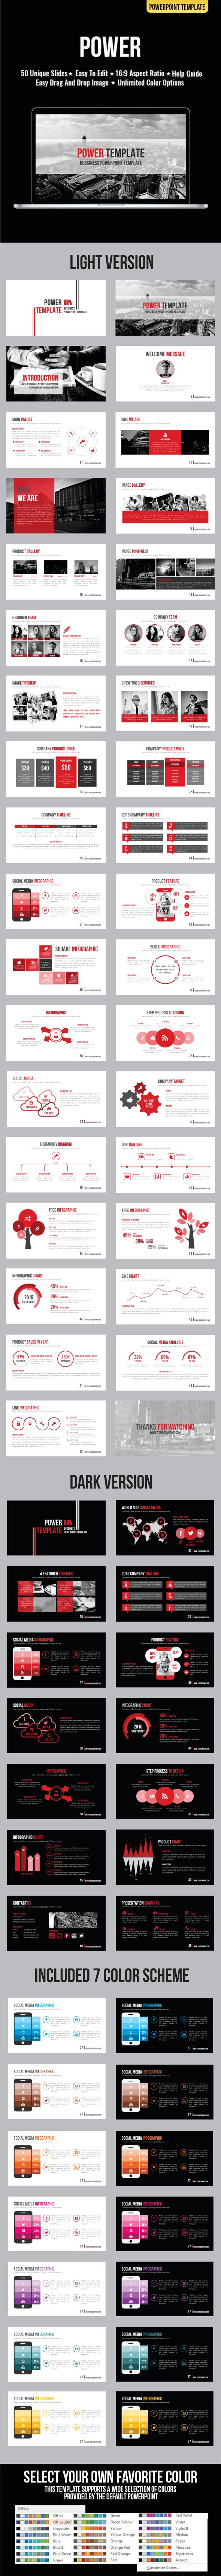 Power Template - Business PowerPoint Templates